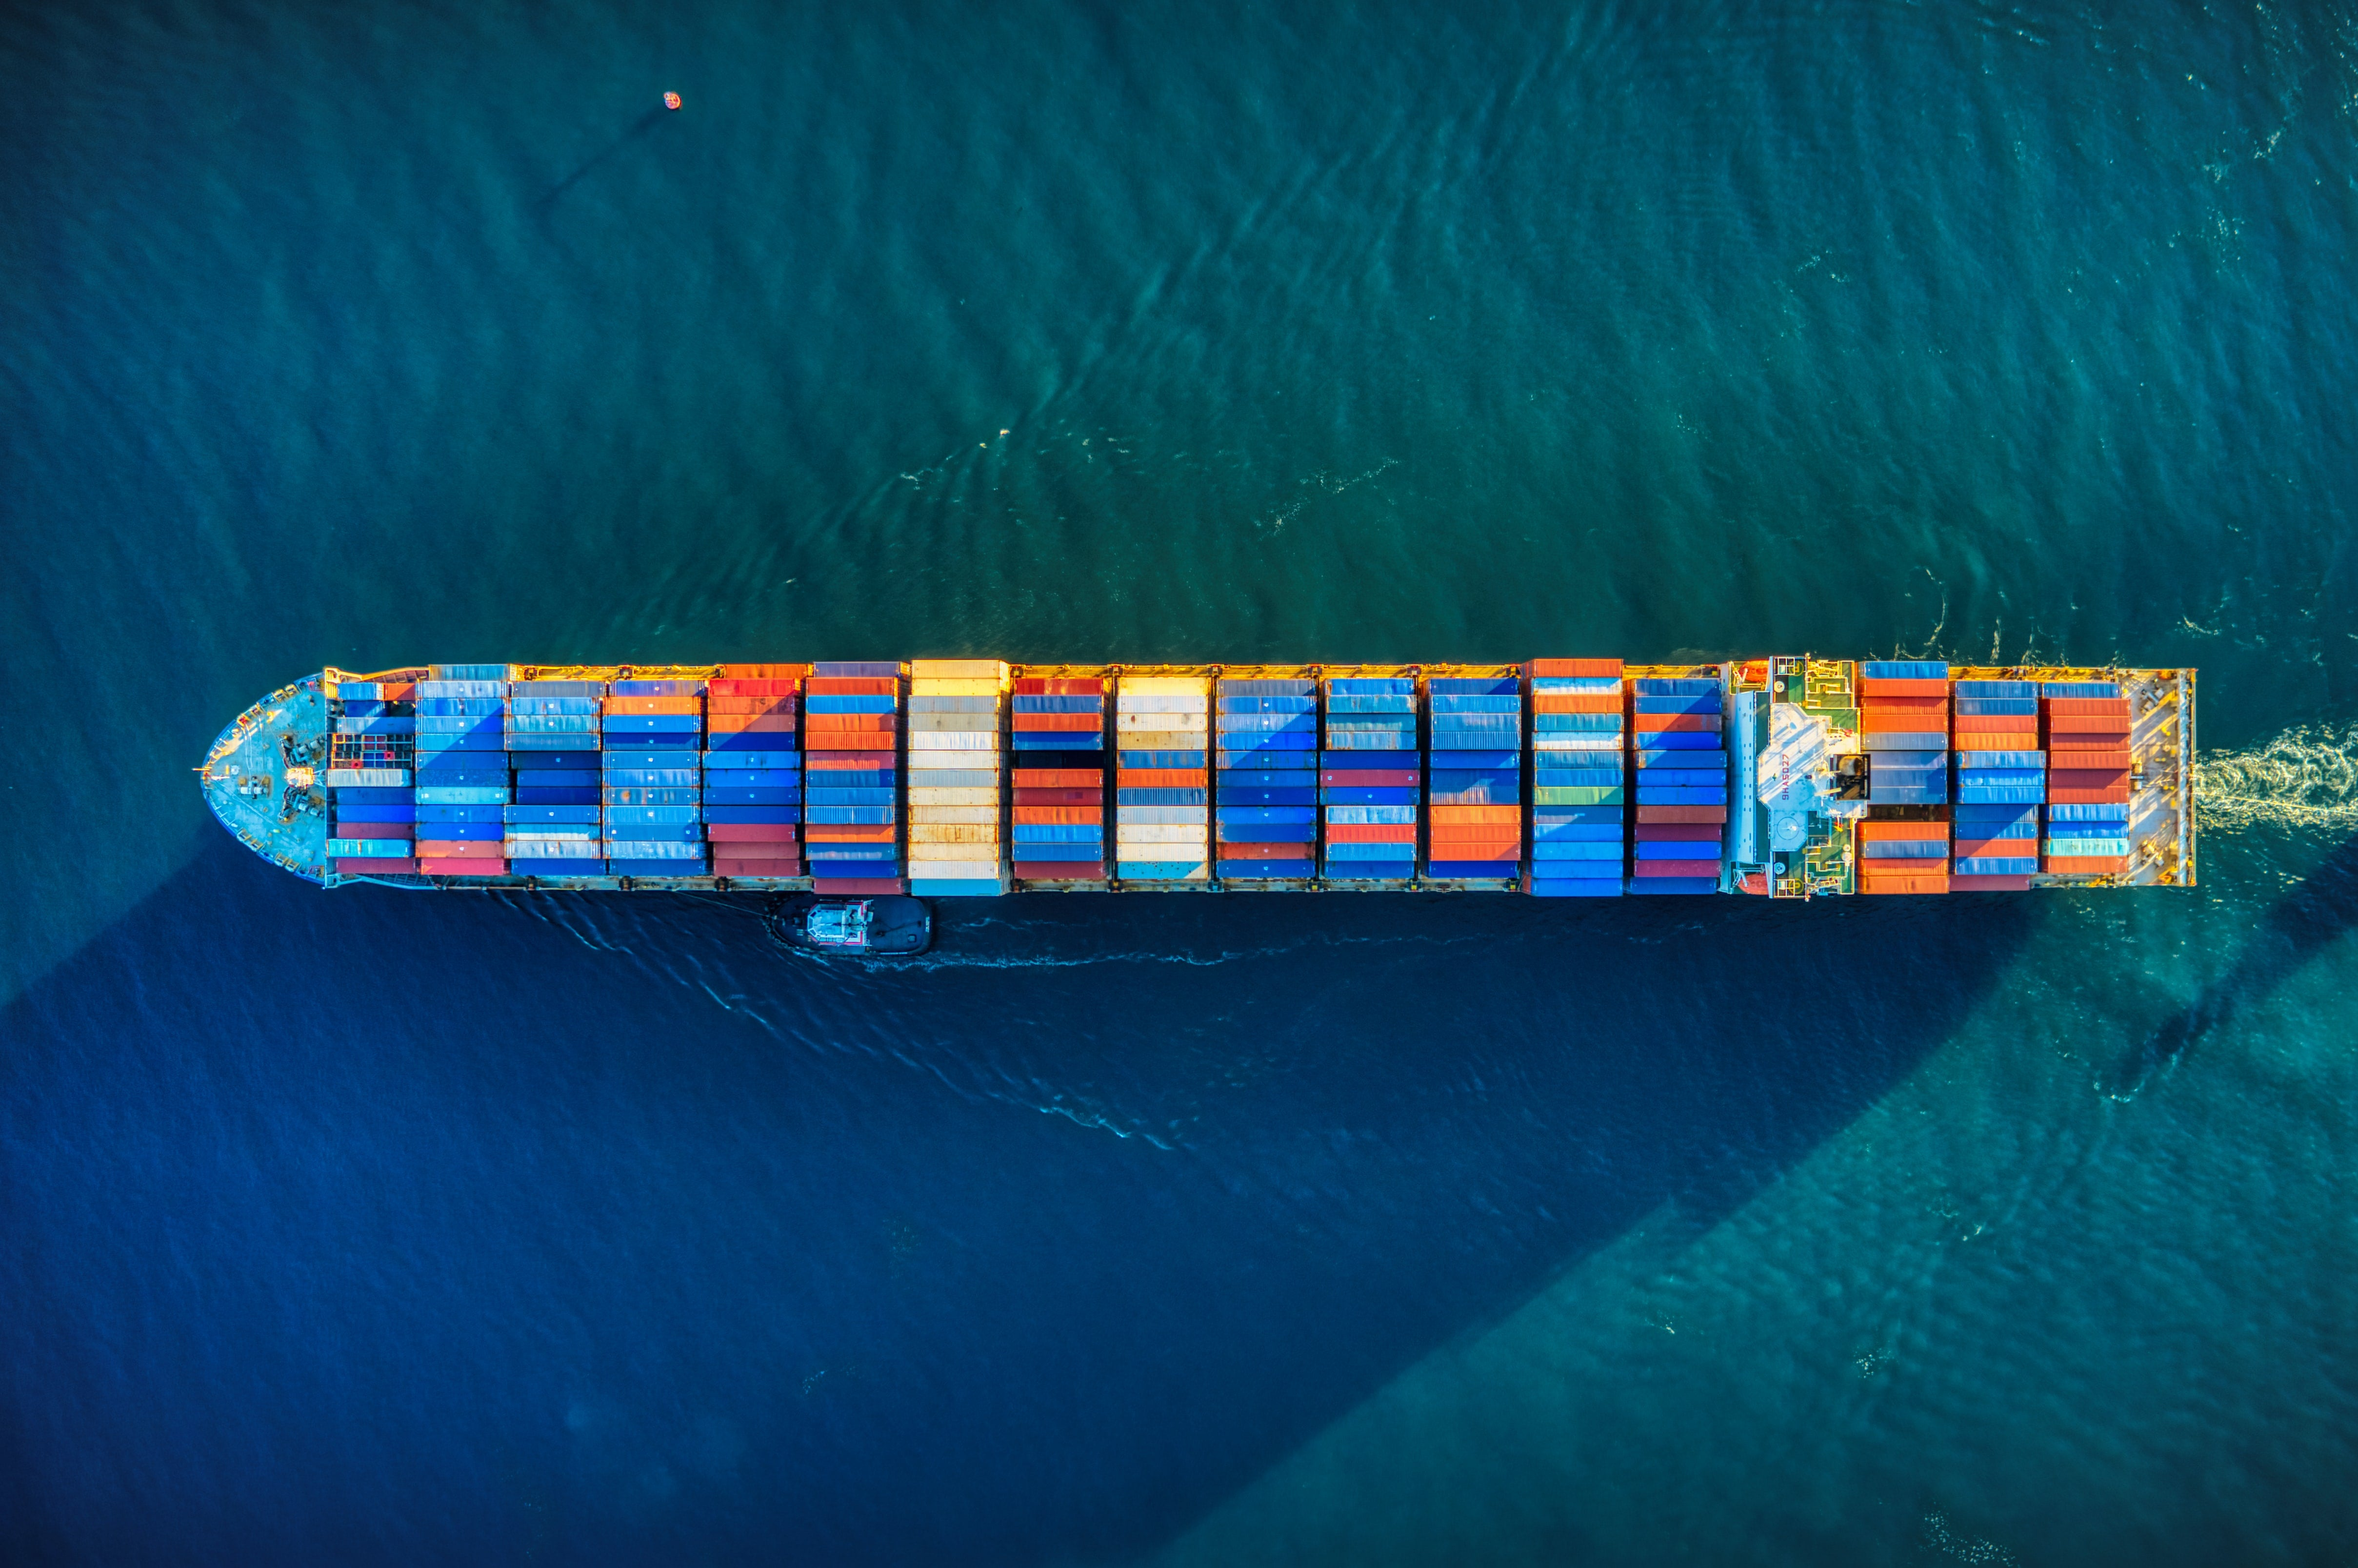 Cargo ship at sea from above